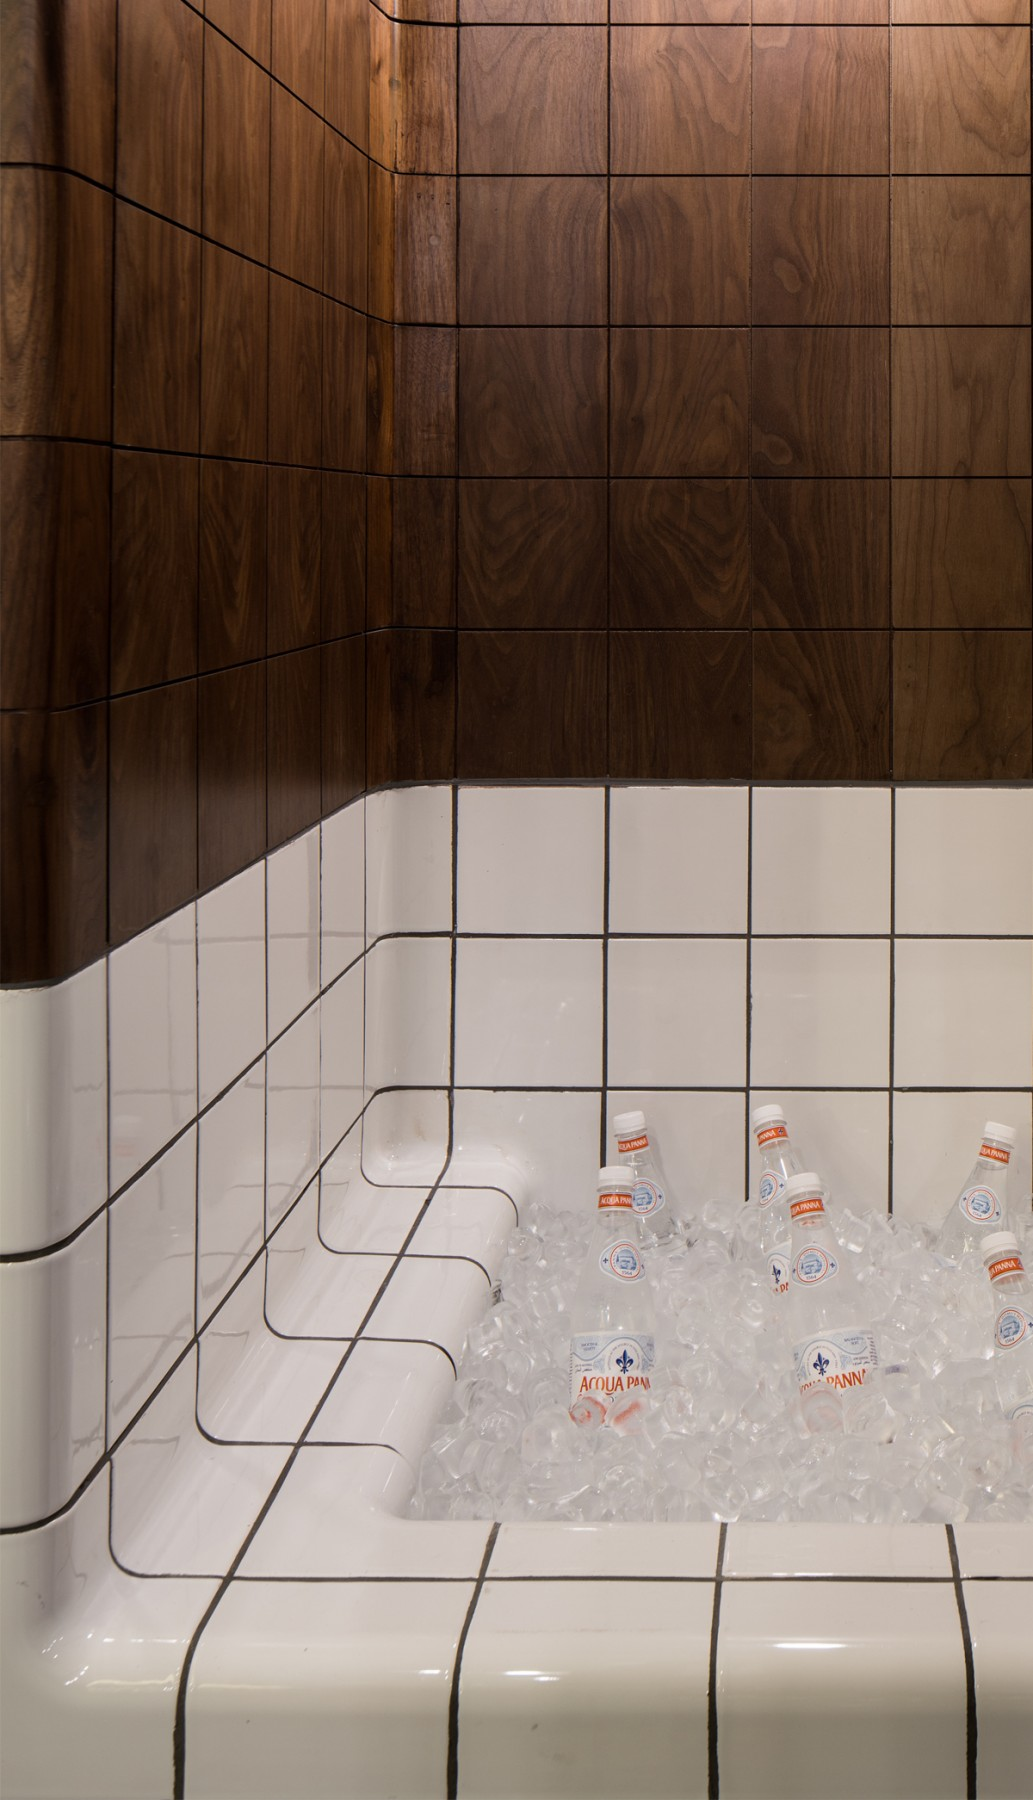 tiled ice bucket in kitchen, modern design functional tiles available in 20 colors